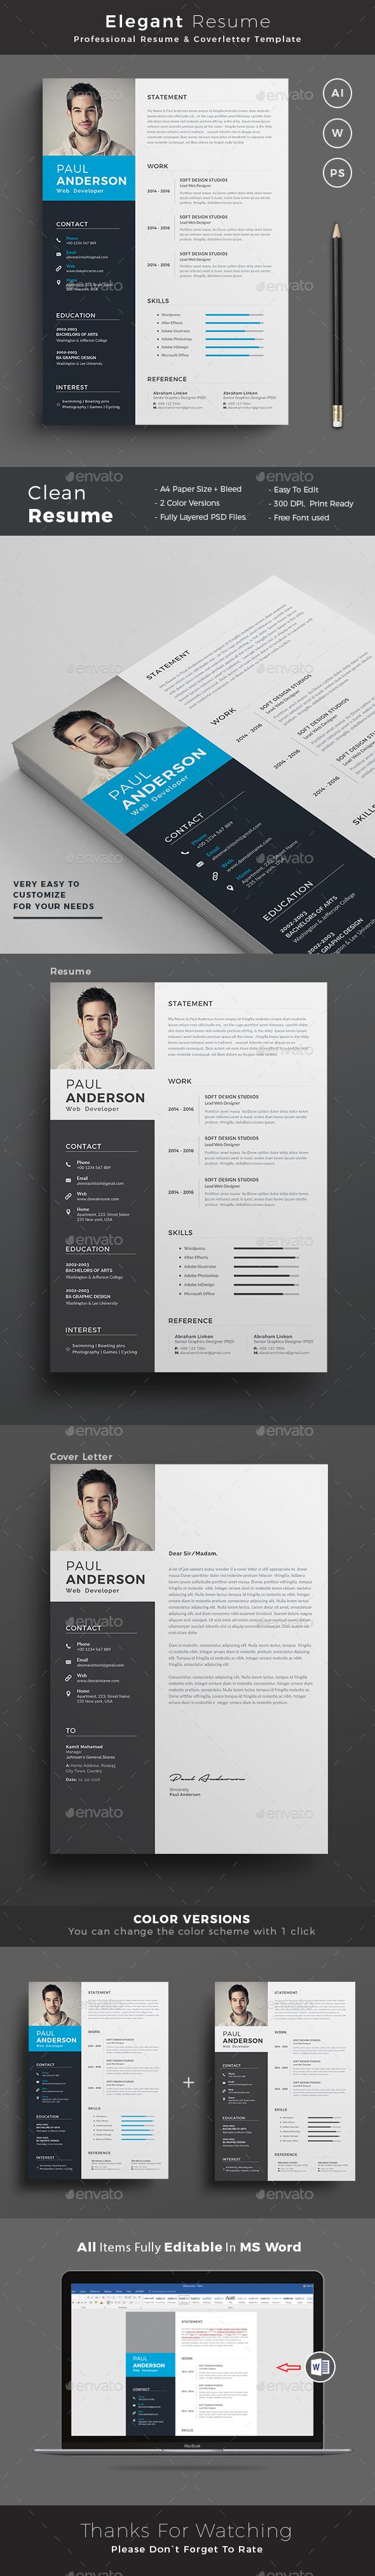 Word Cv Templates 2007%0A Resume Template PSD  AI  MS Word